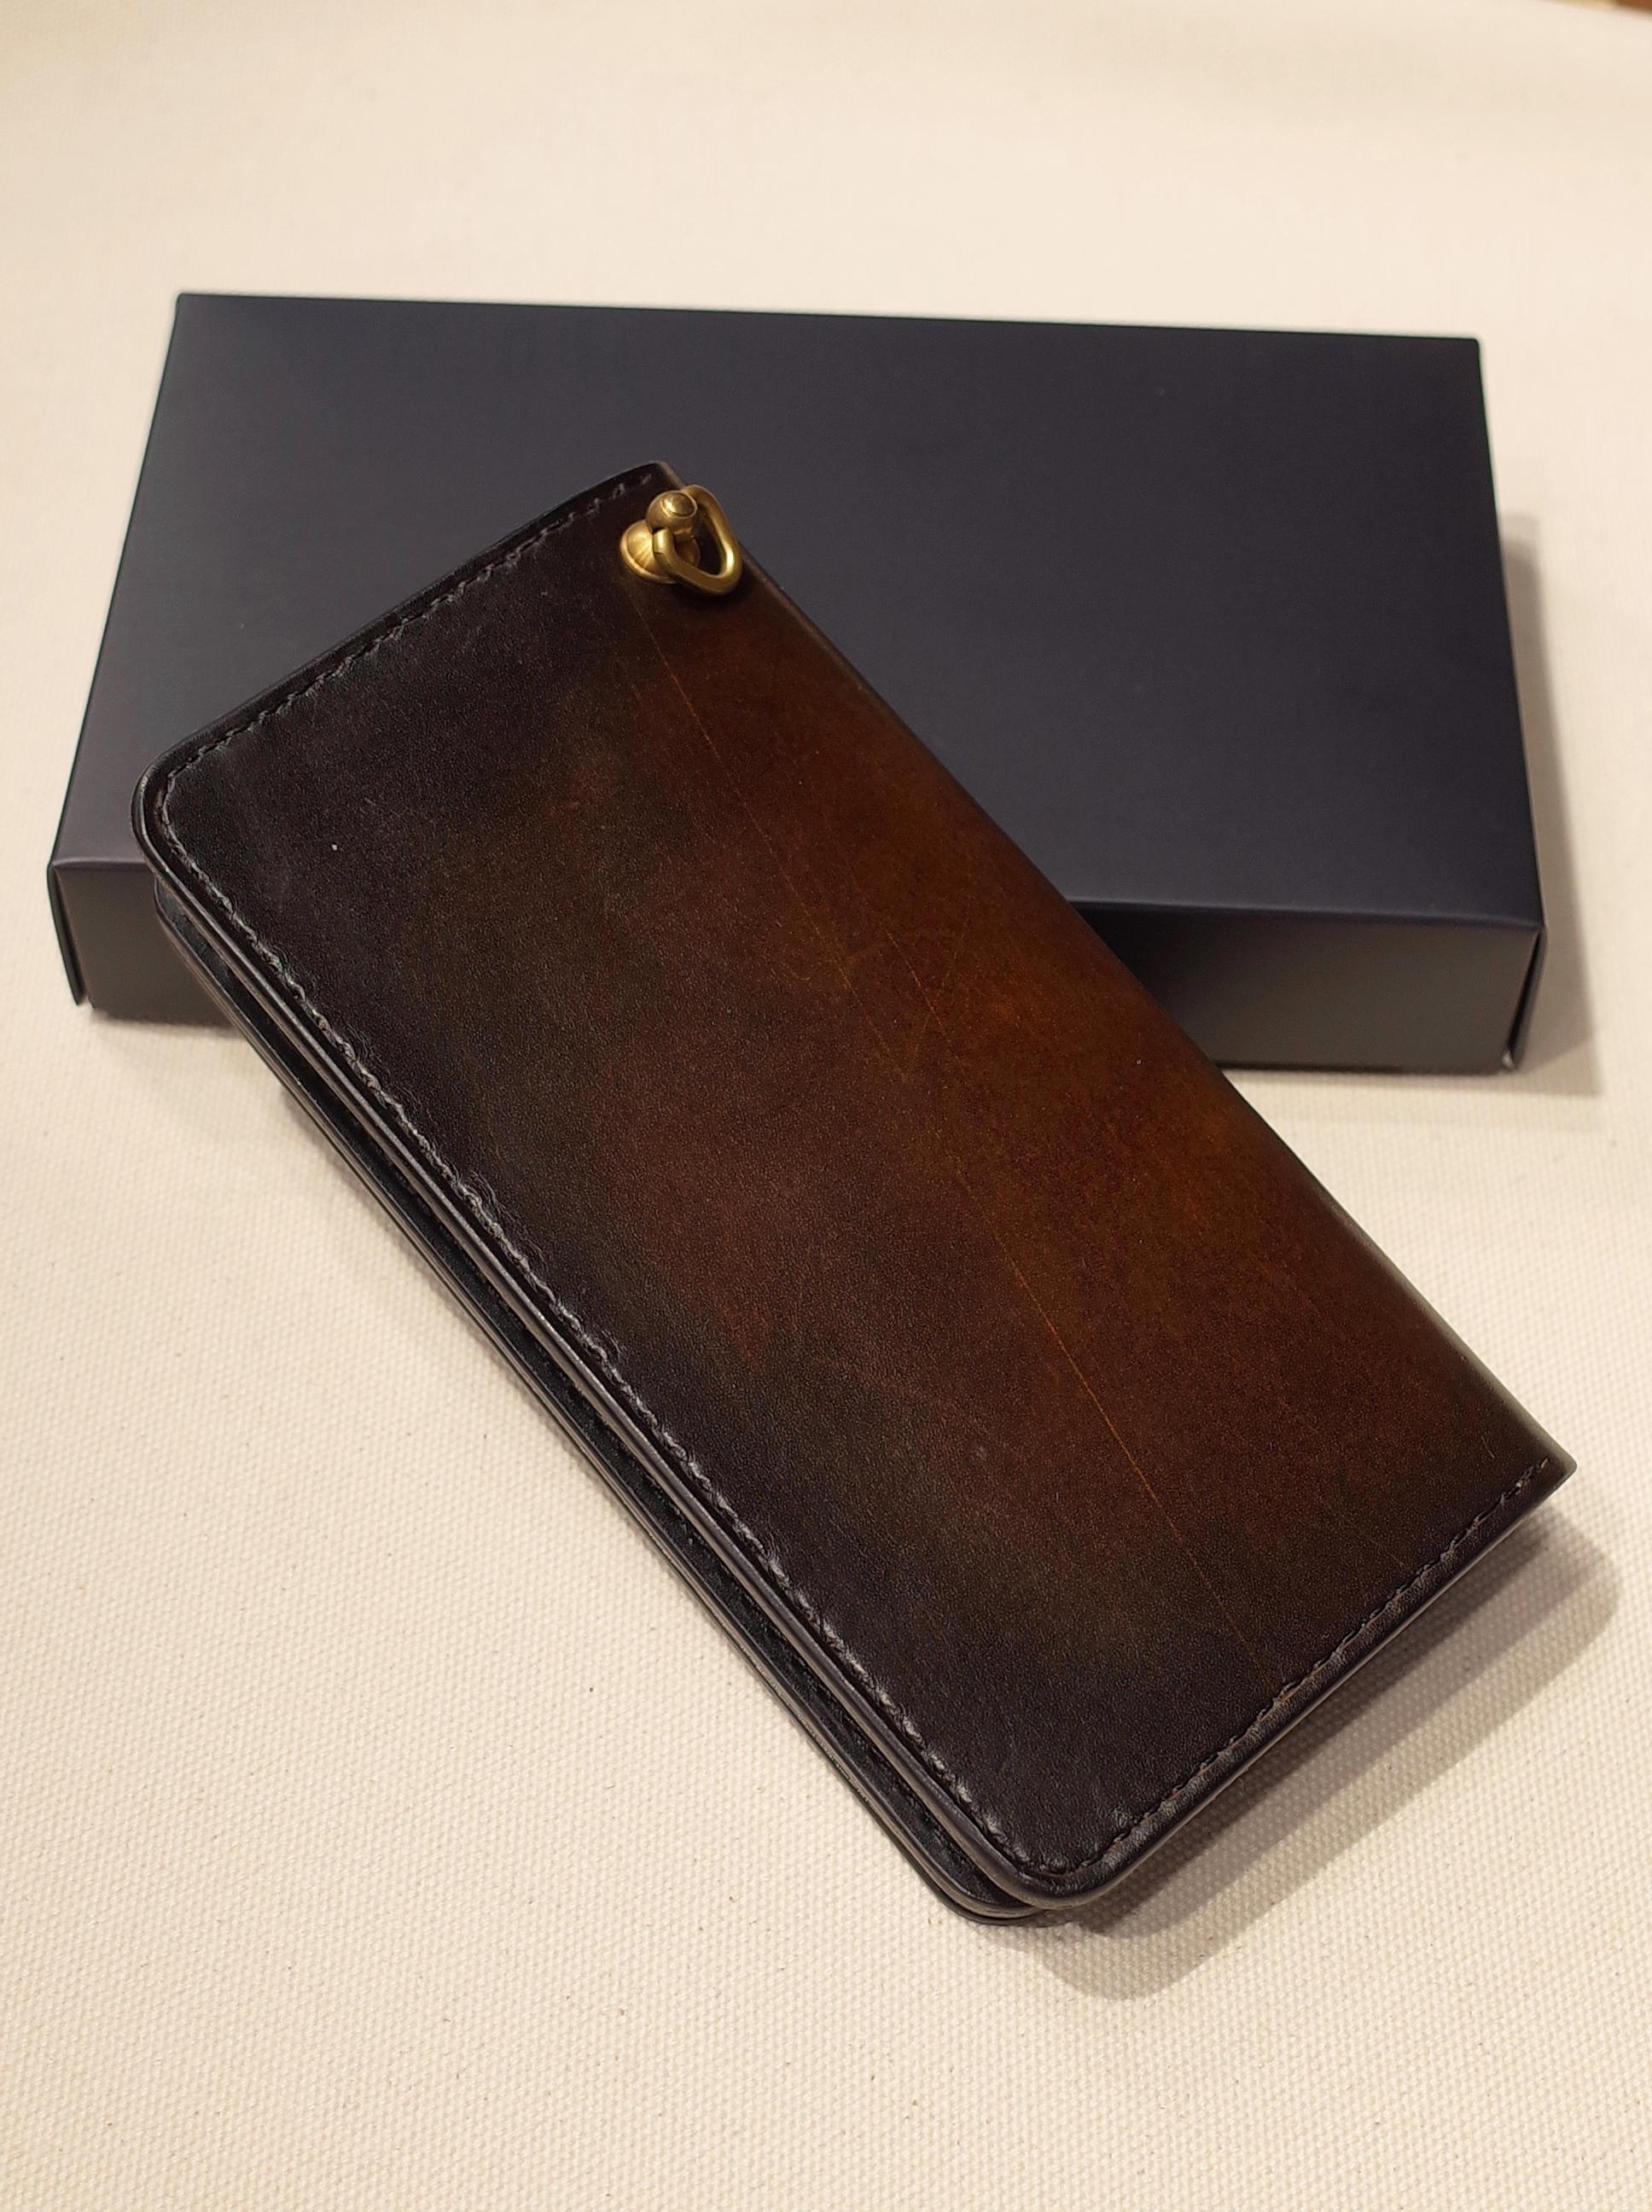 DEXTER  「 Hand Dyed Leather Plane Long Wallet」  レザーロングウォレット